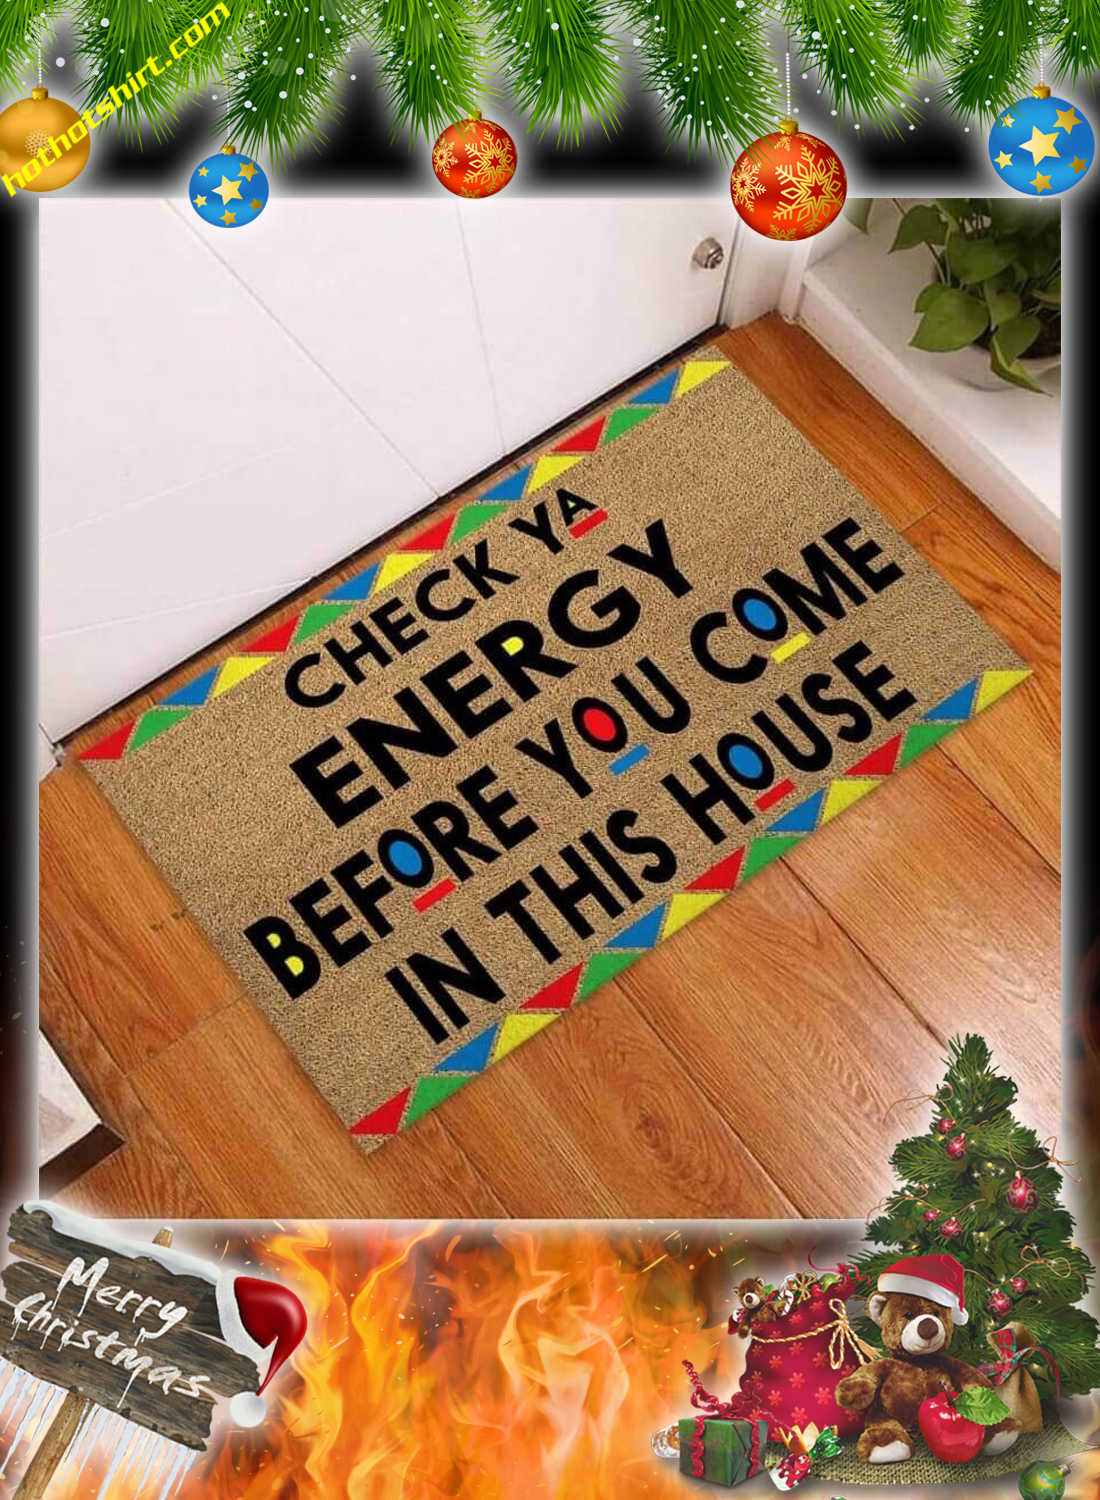 Check ya energy before you come in this house doormat 3